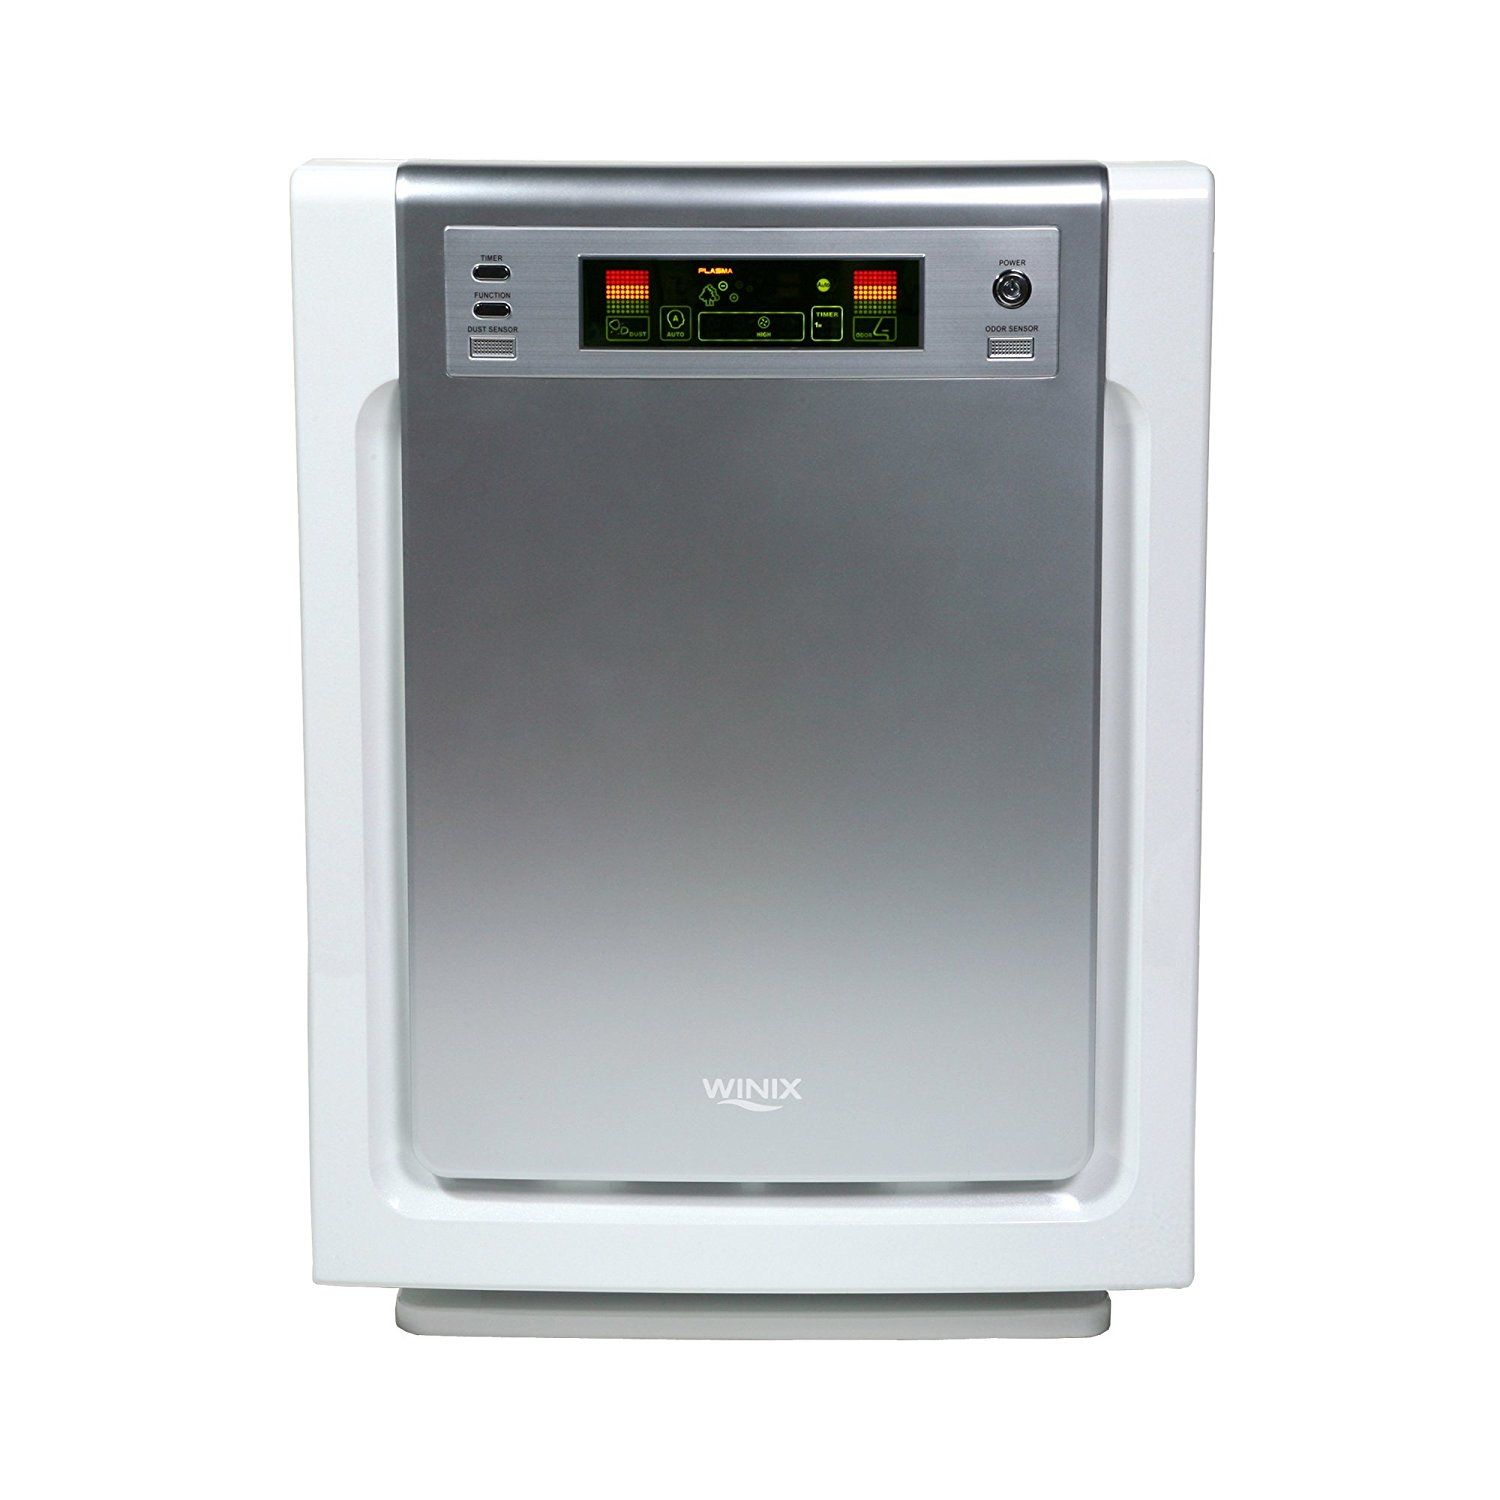 Winix model WAC9500 Hepa air purifier, Air purifier